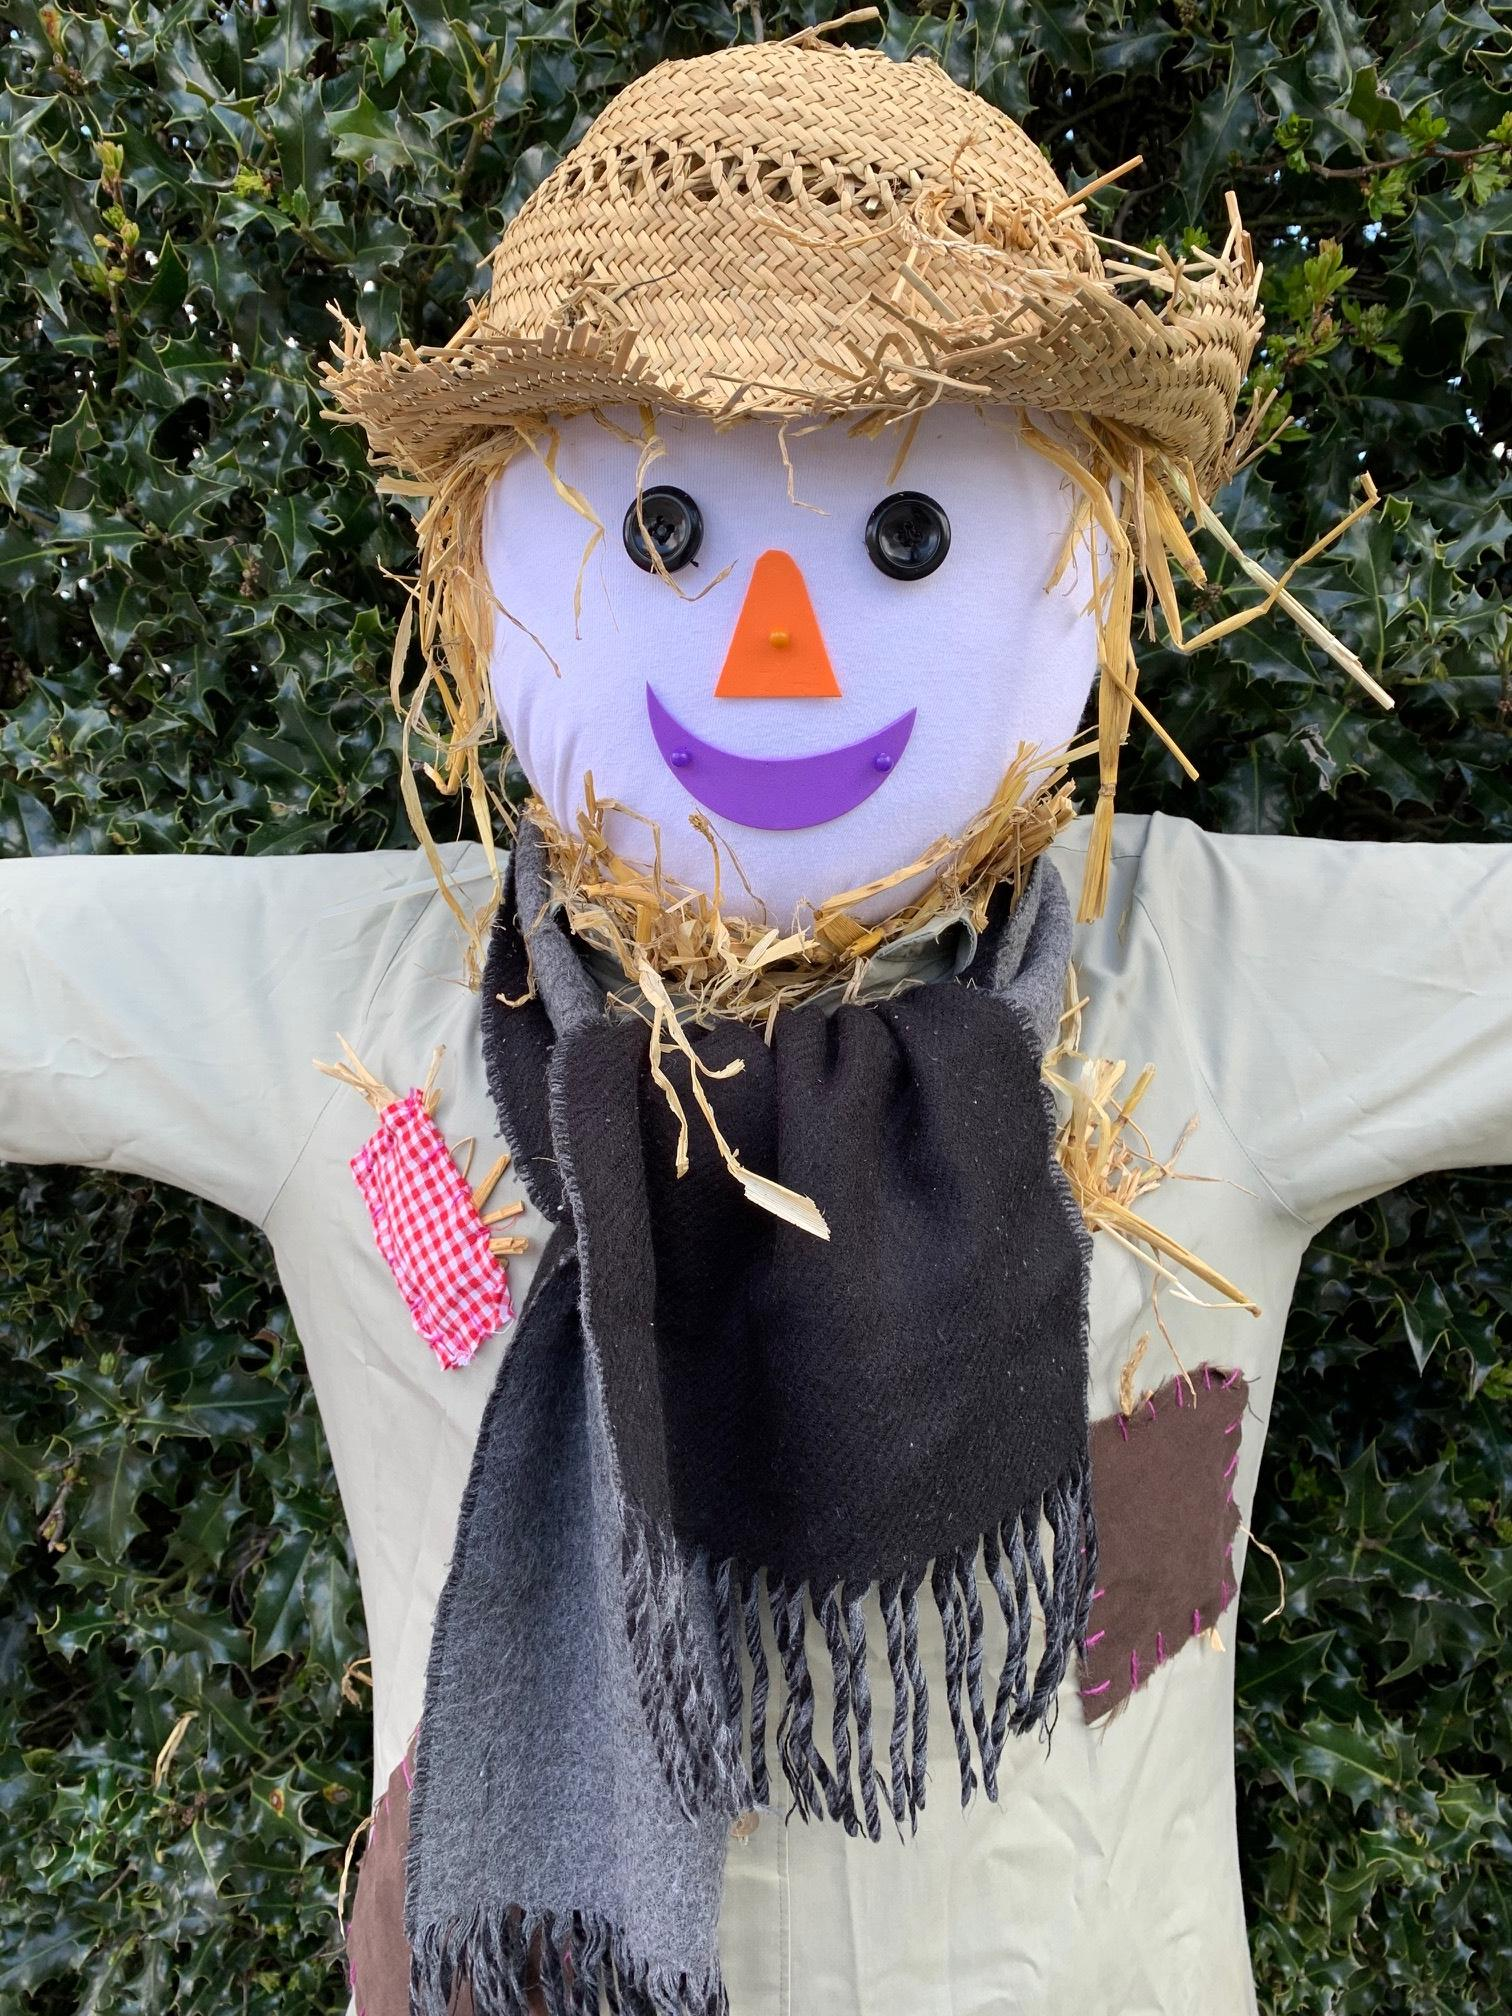 There are lots of scarecrows on show in Stokenchurch